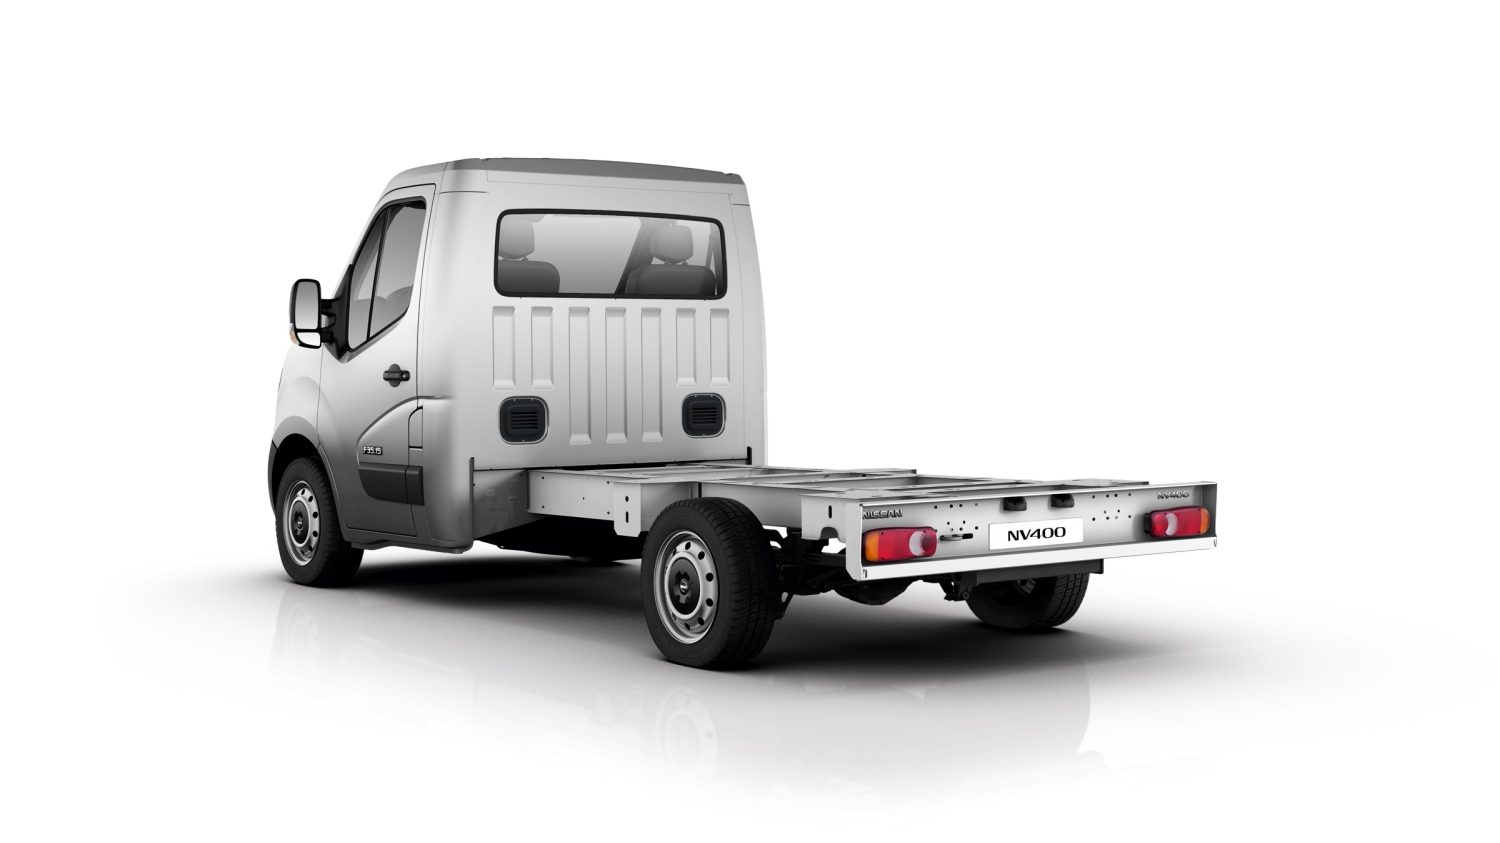 Nissan NV400 – chassis